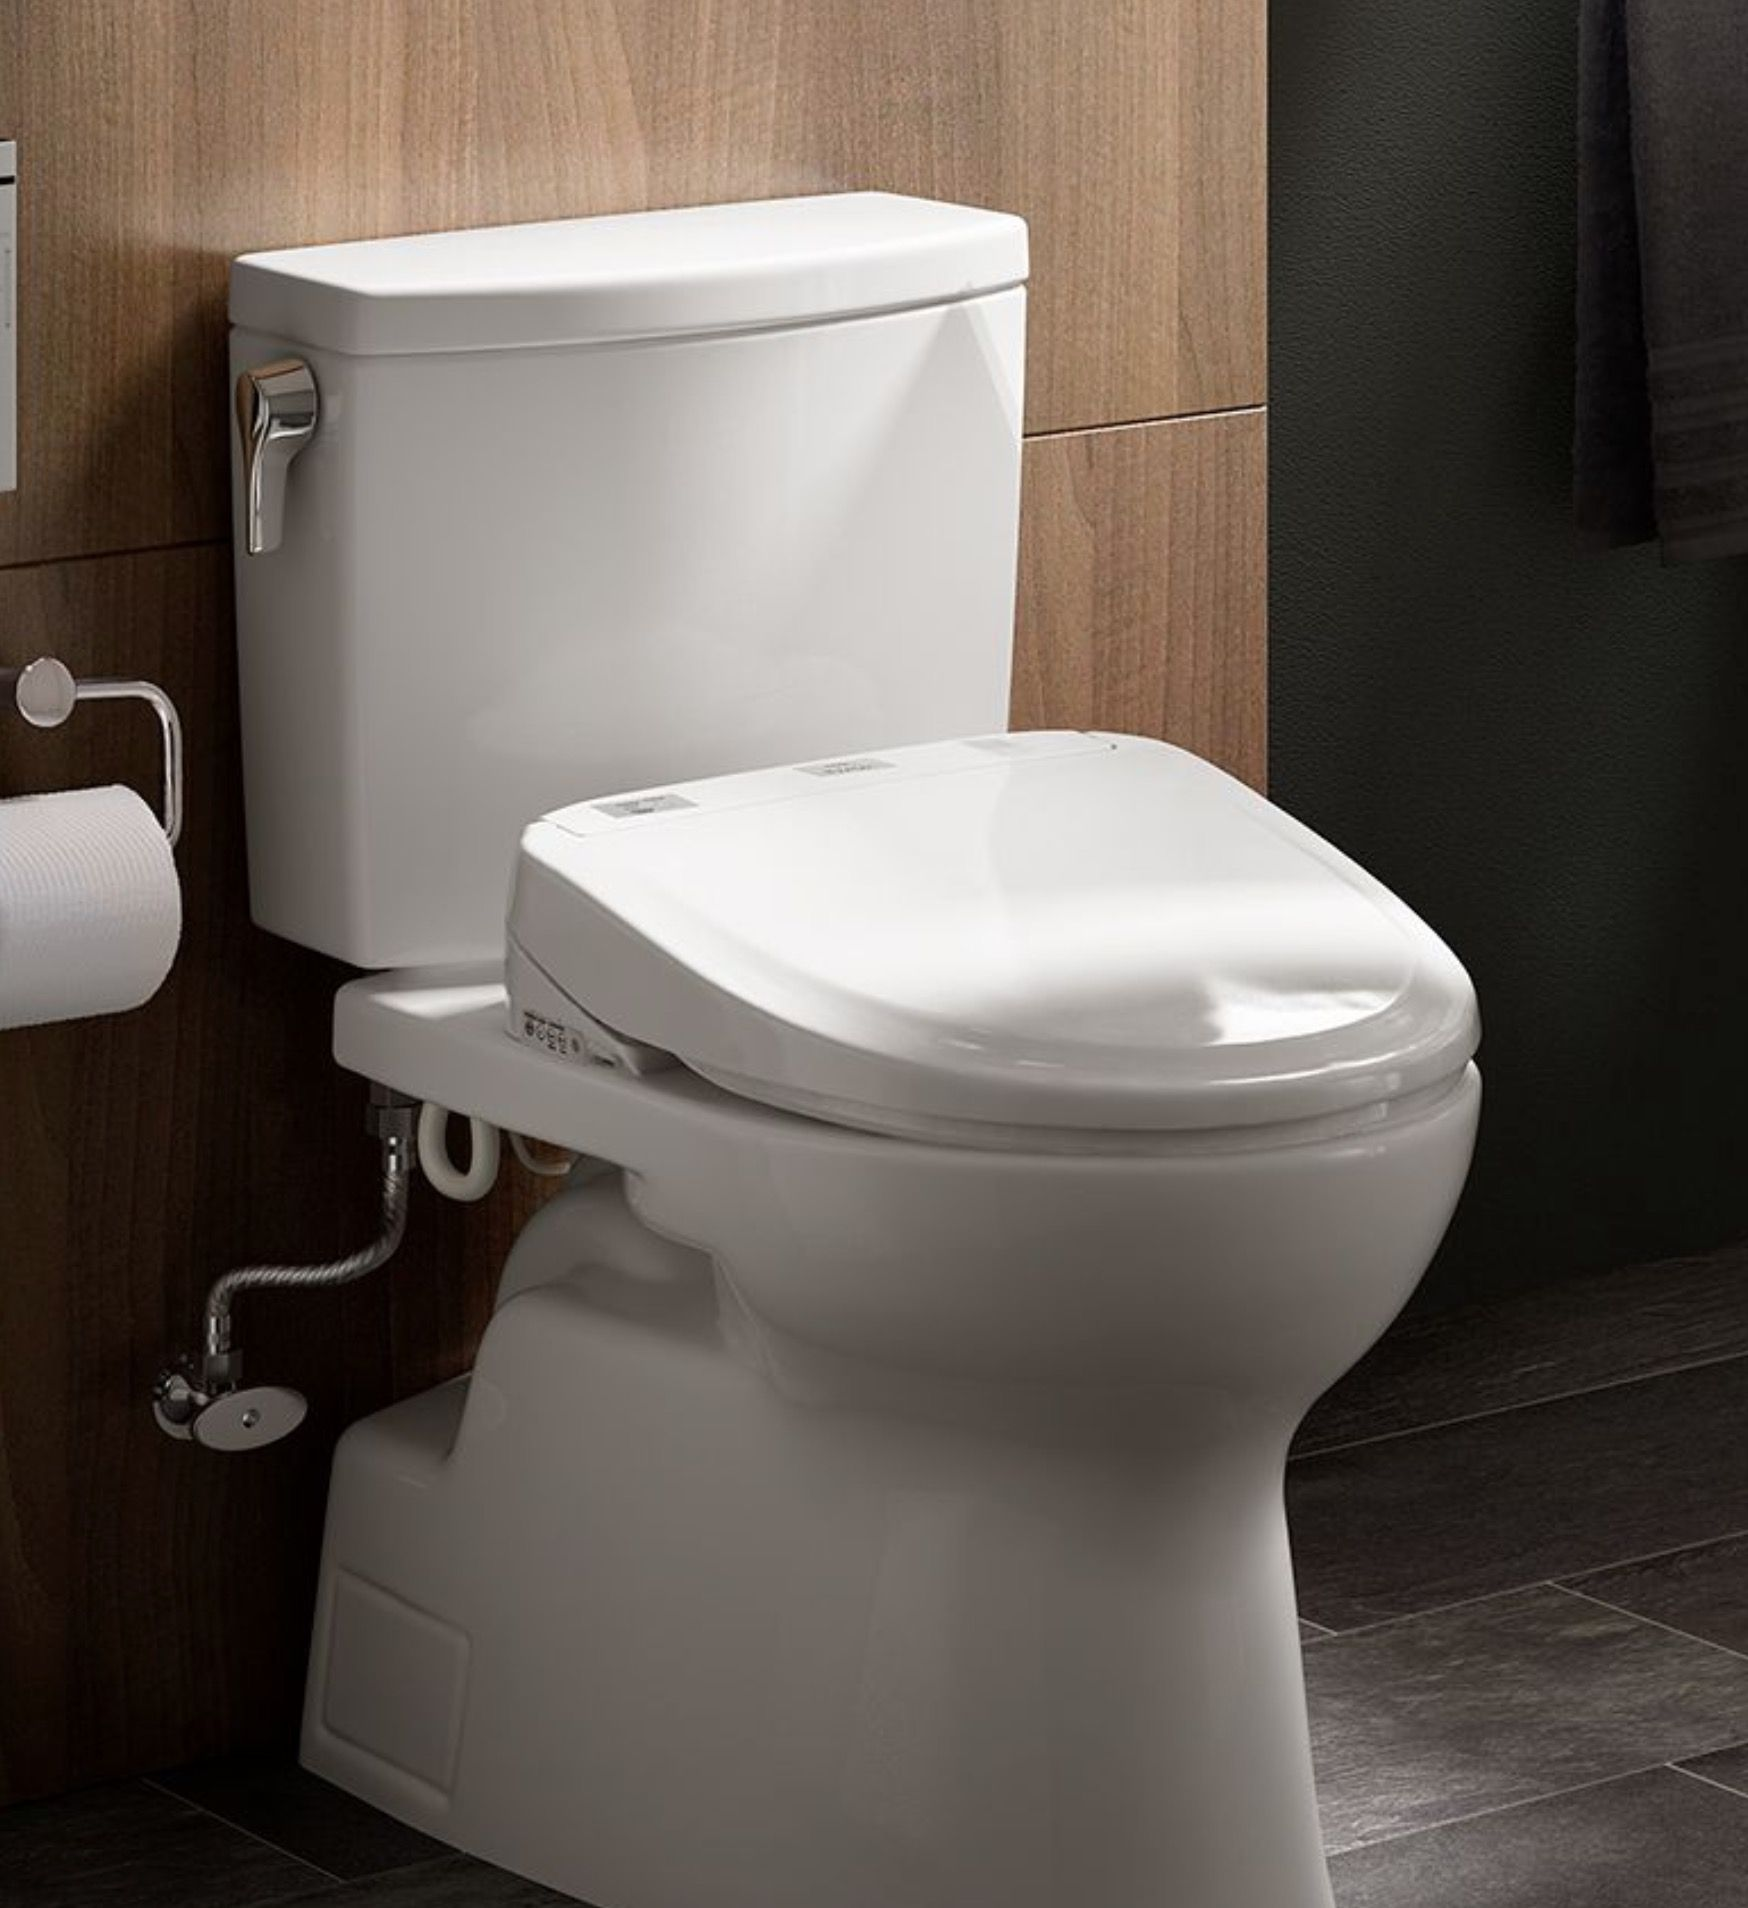 The TOTO WASHLET is an electronic bidet seat that cleanses